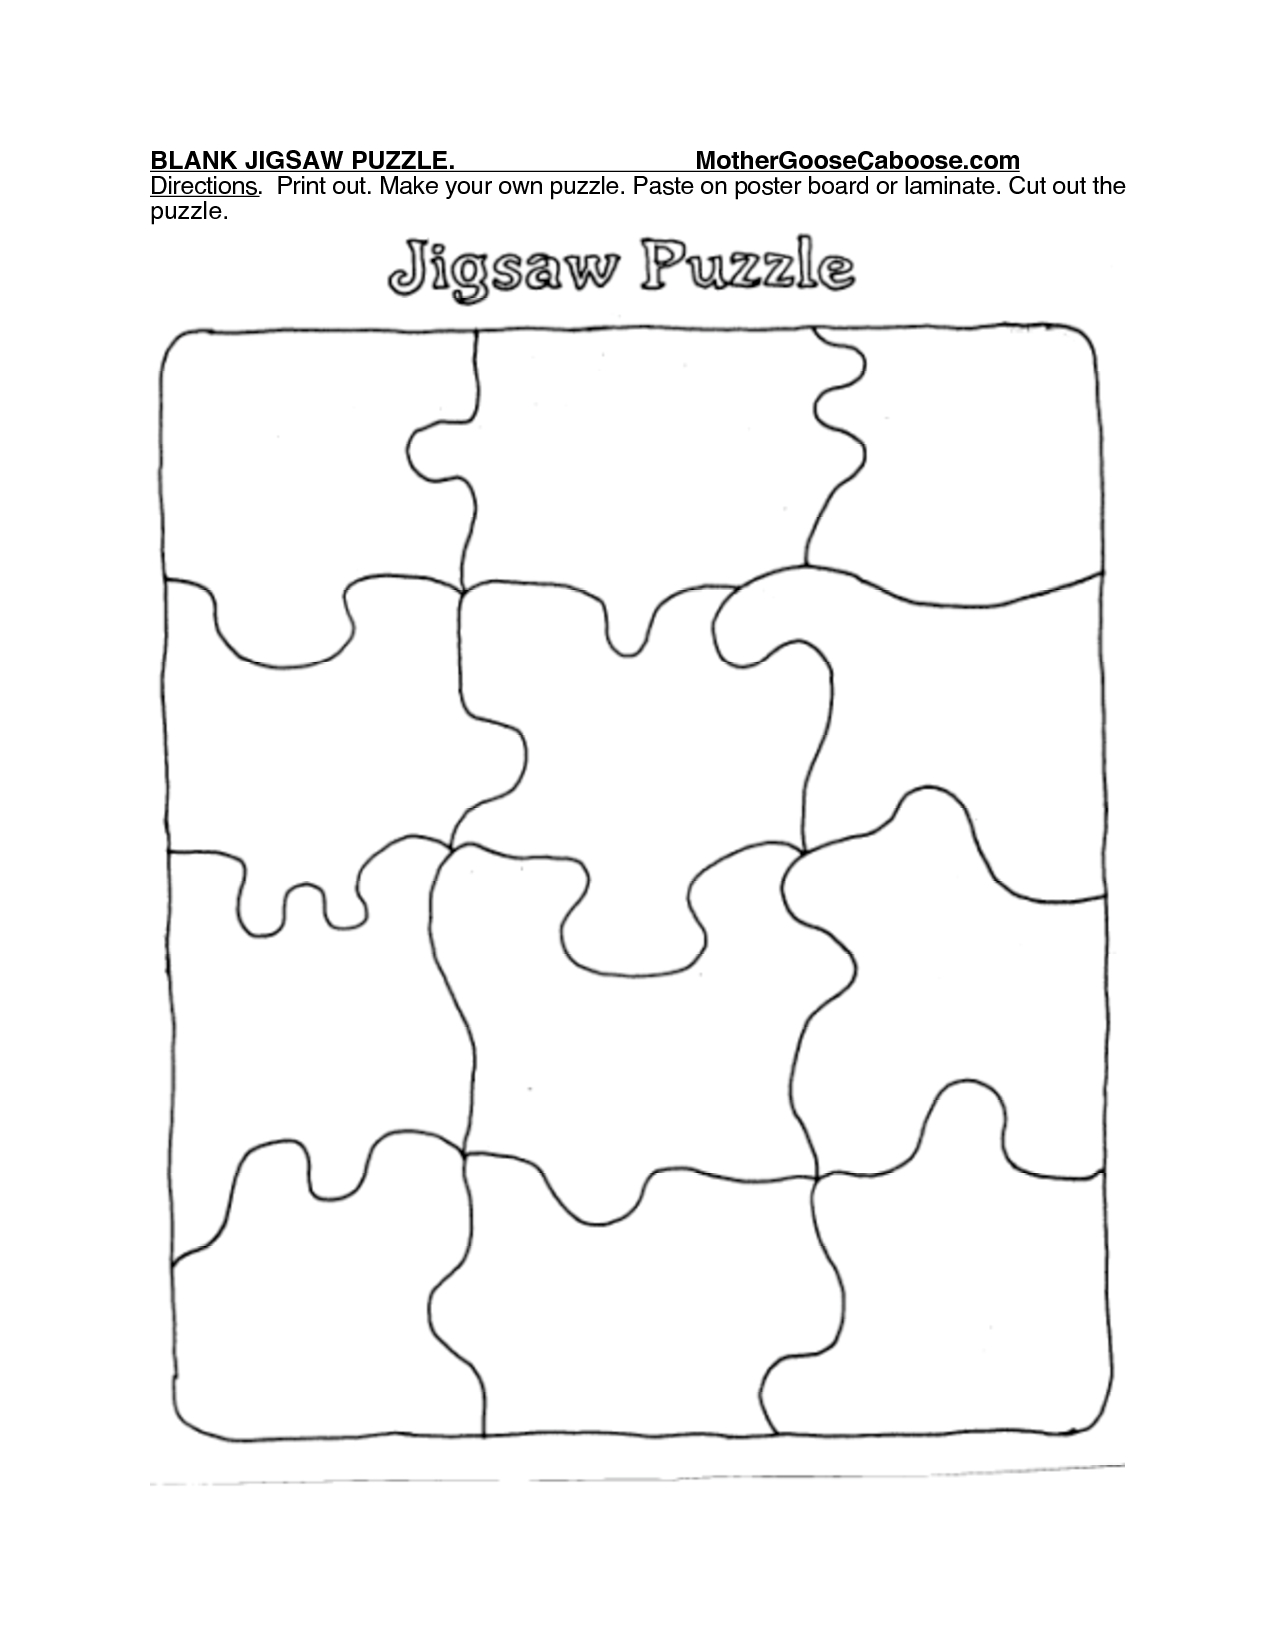 Printable Puzzle Piece Template | Search Results | New Calendar - Printable Jigsaw Puzzles Pdf